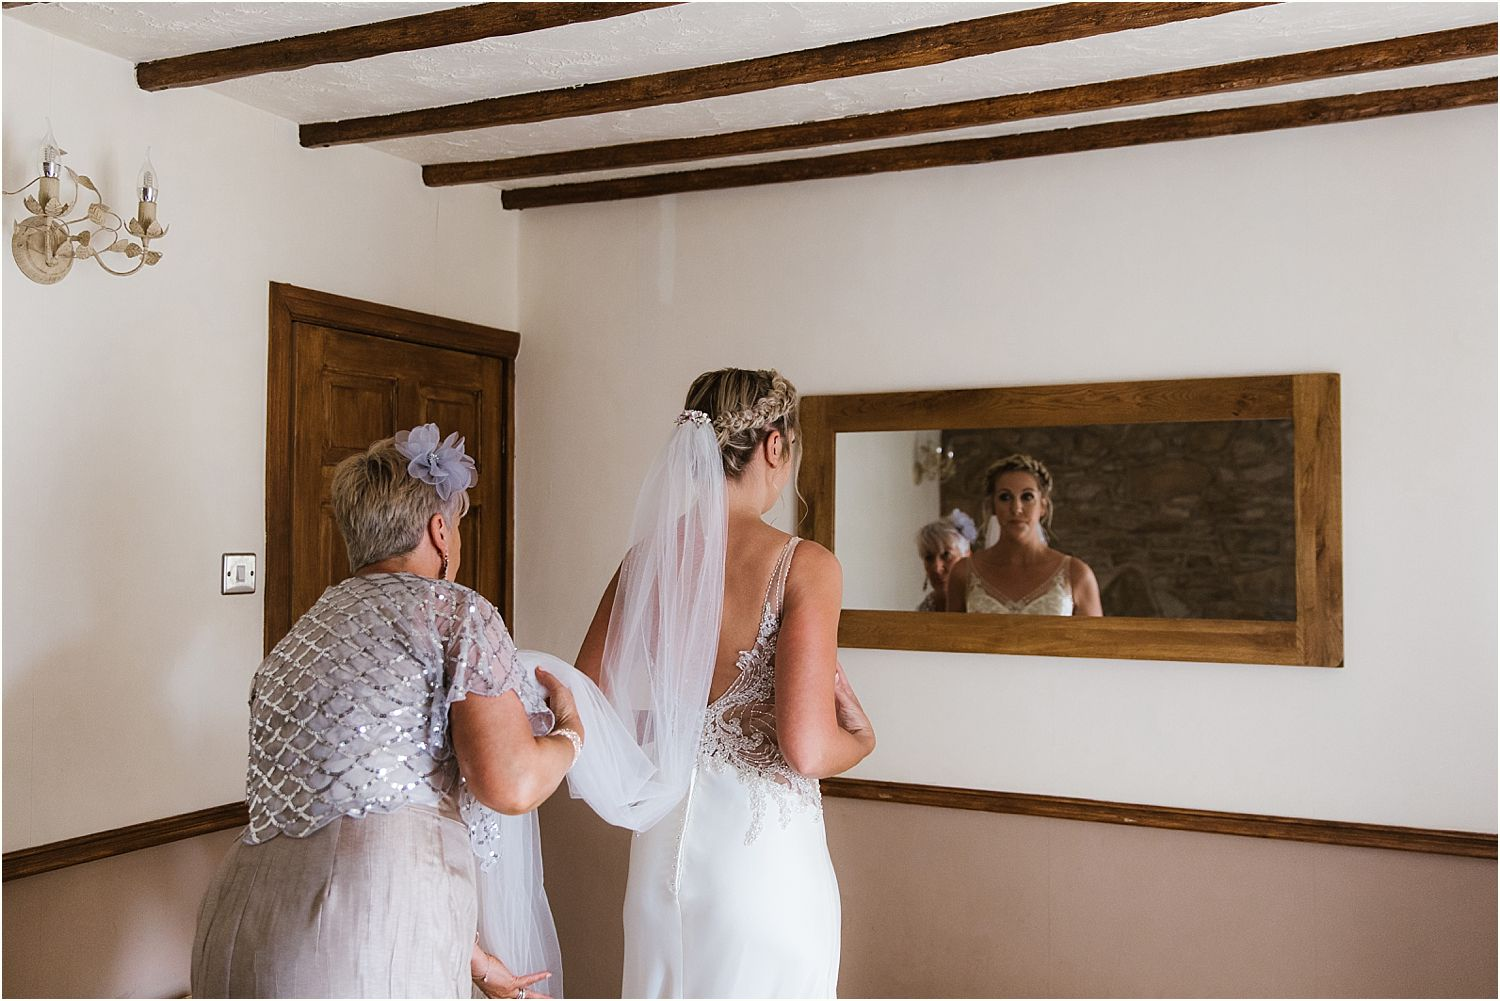 Positioning the bride's veil prior to Lancashire farm wedding. Bride's accessories by The Bridal Lounge of Accrington